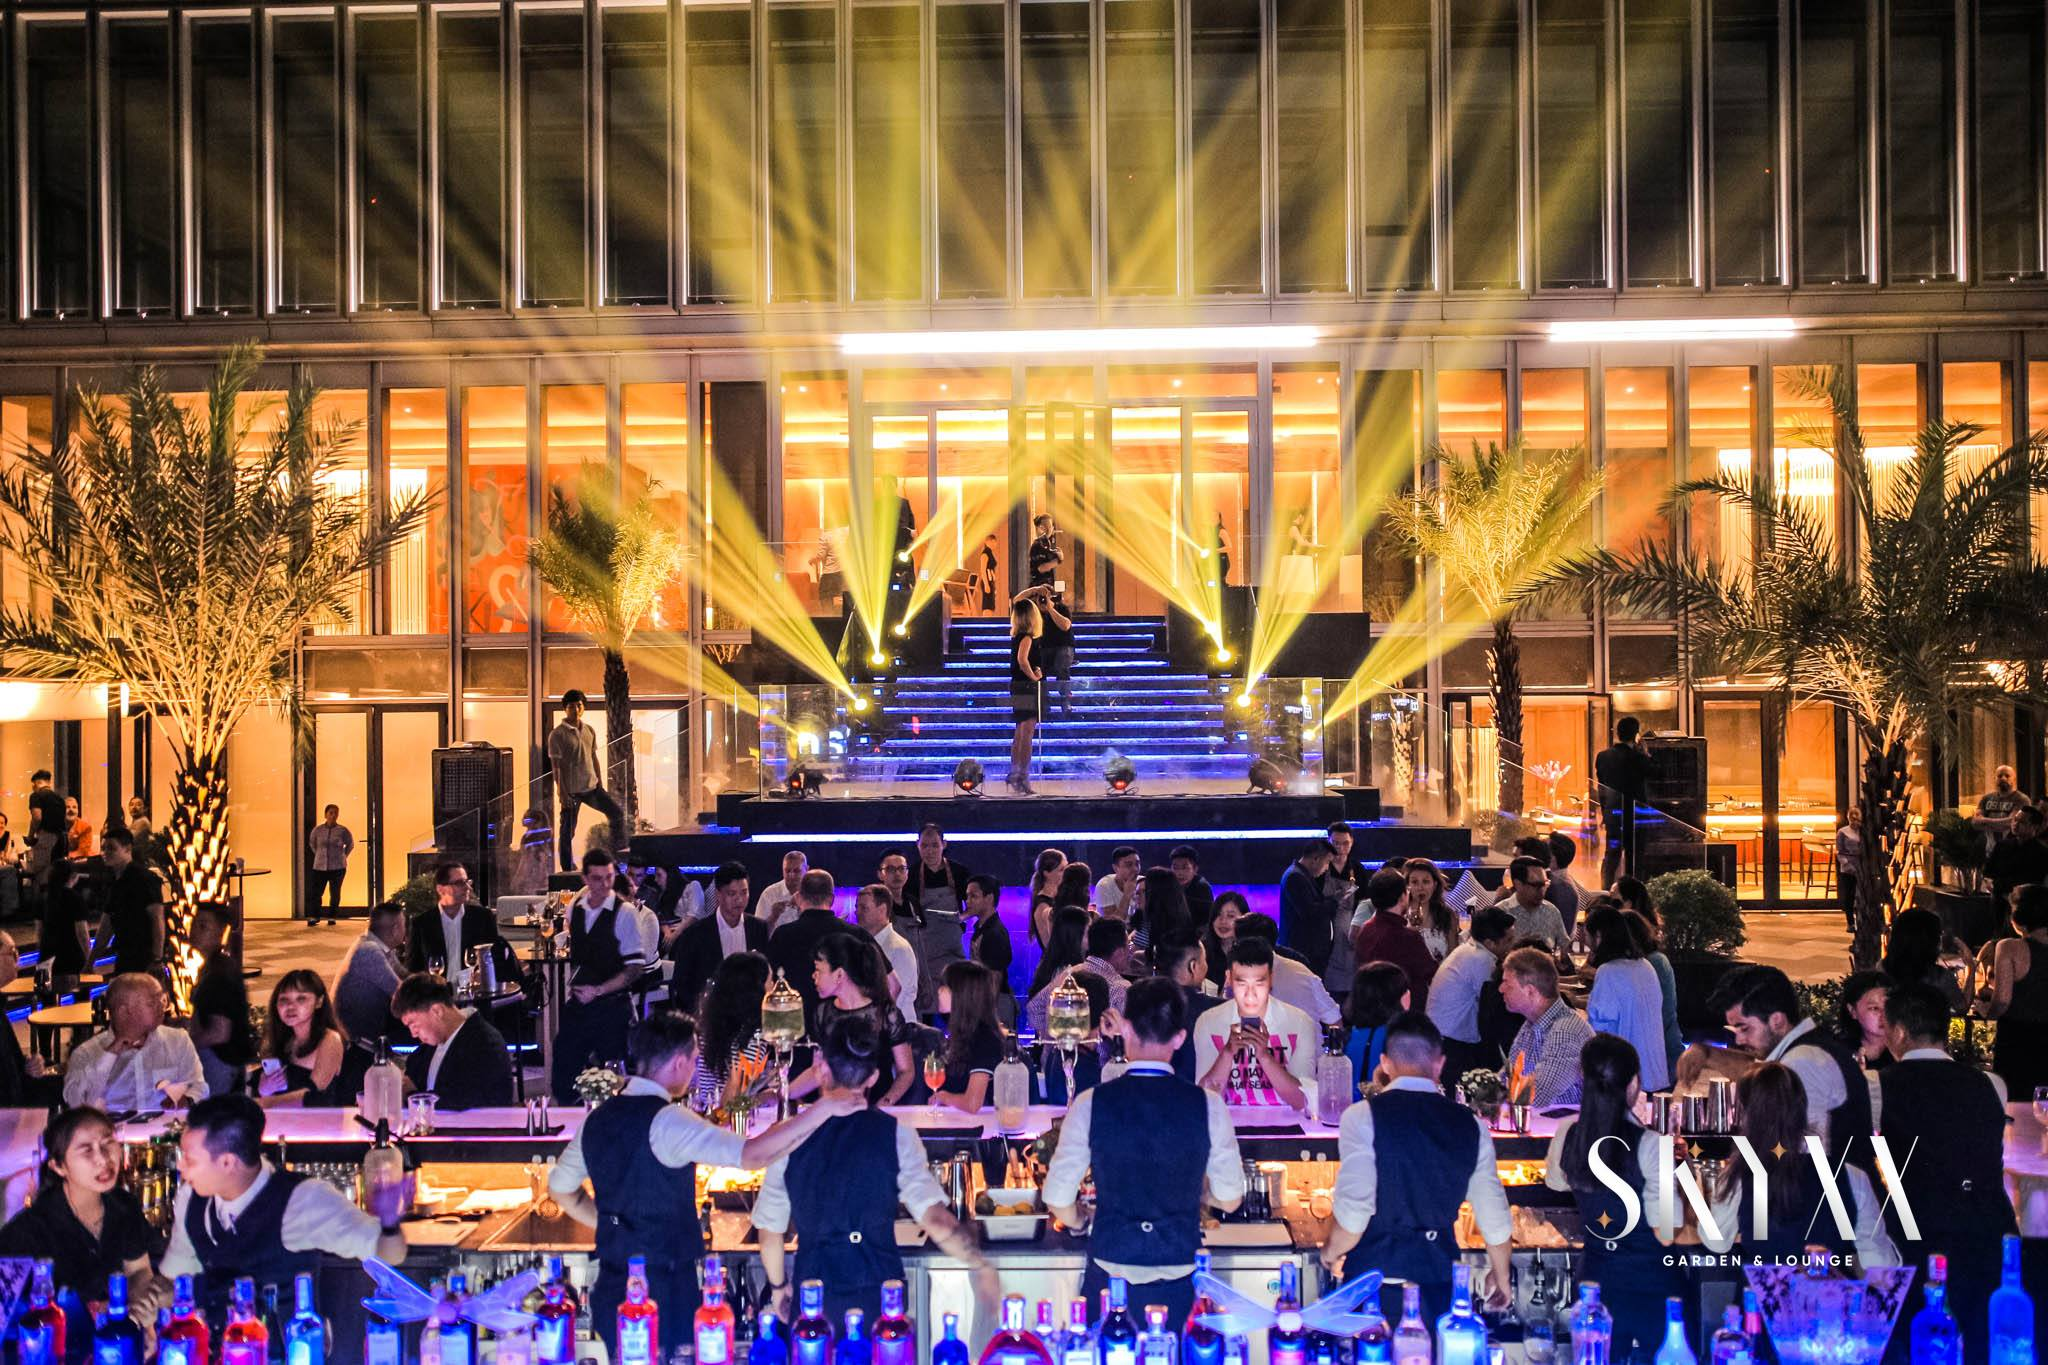 SkyXX - Perched on top of the Deutche Hause building at Le Duan Street in District 1, the open-air rooftop terrace comes with a vibrant atmosphere and a mix of lounge sofas, bar stools, lighted palm trees and a large, illuminated bar - which is booked exclusively for the VIP party.